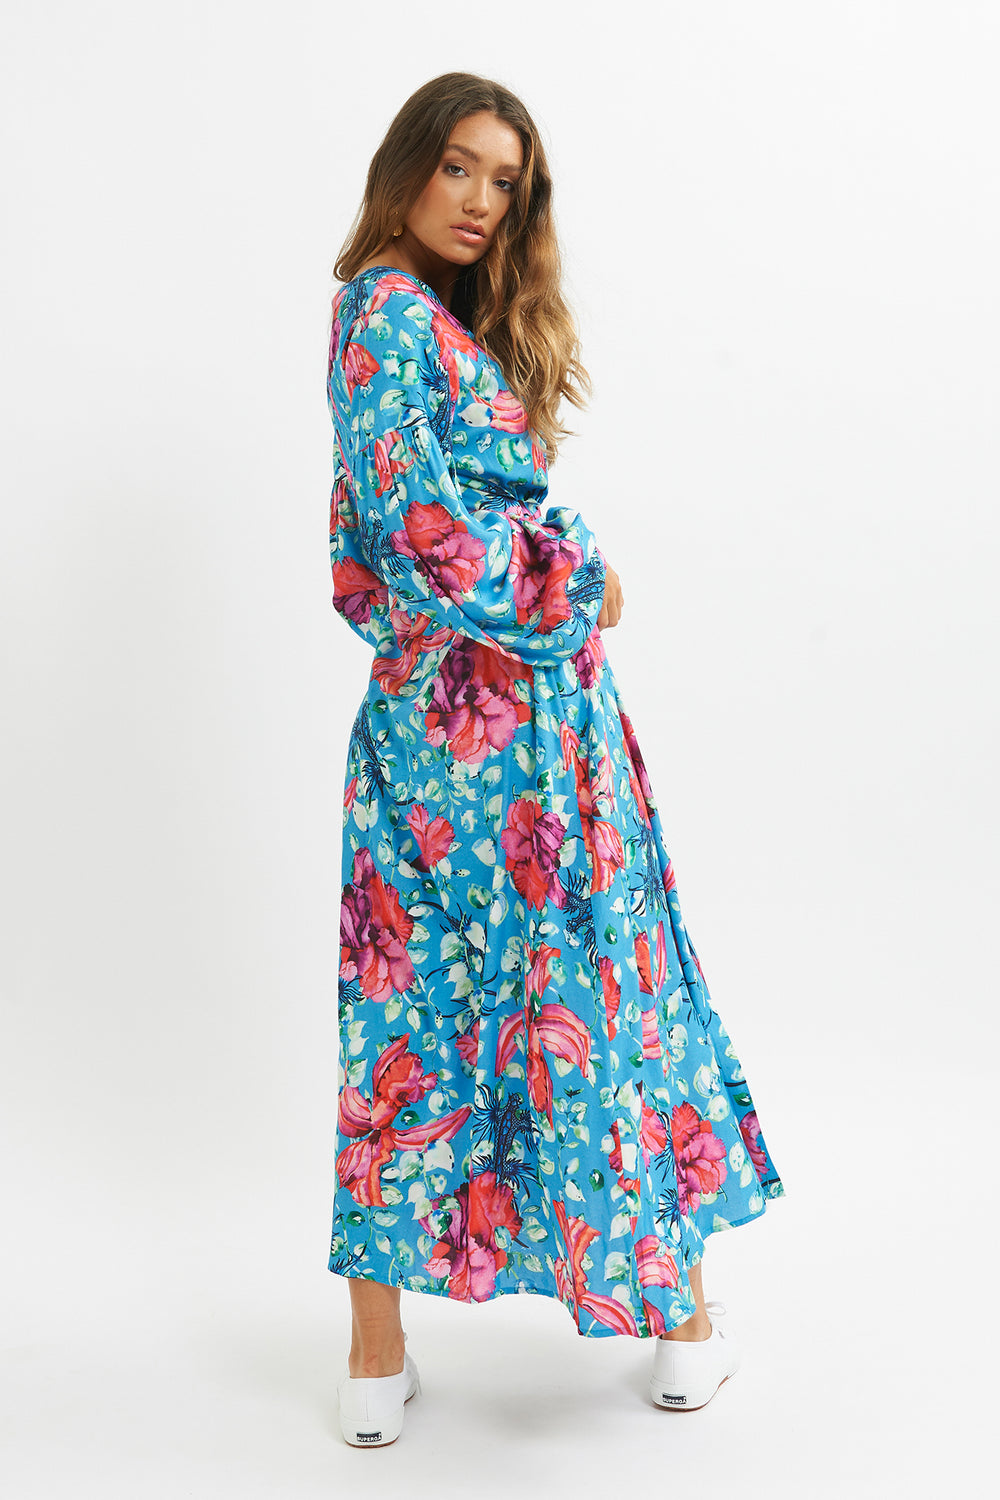 Blue Dragon Puff Sleeve Dress - shopsigal